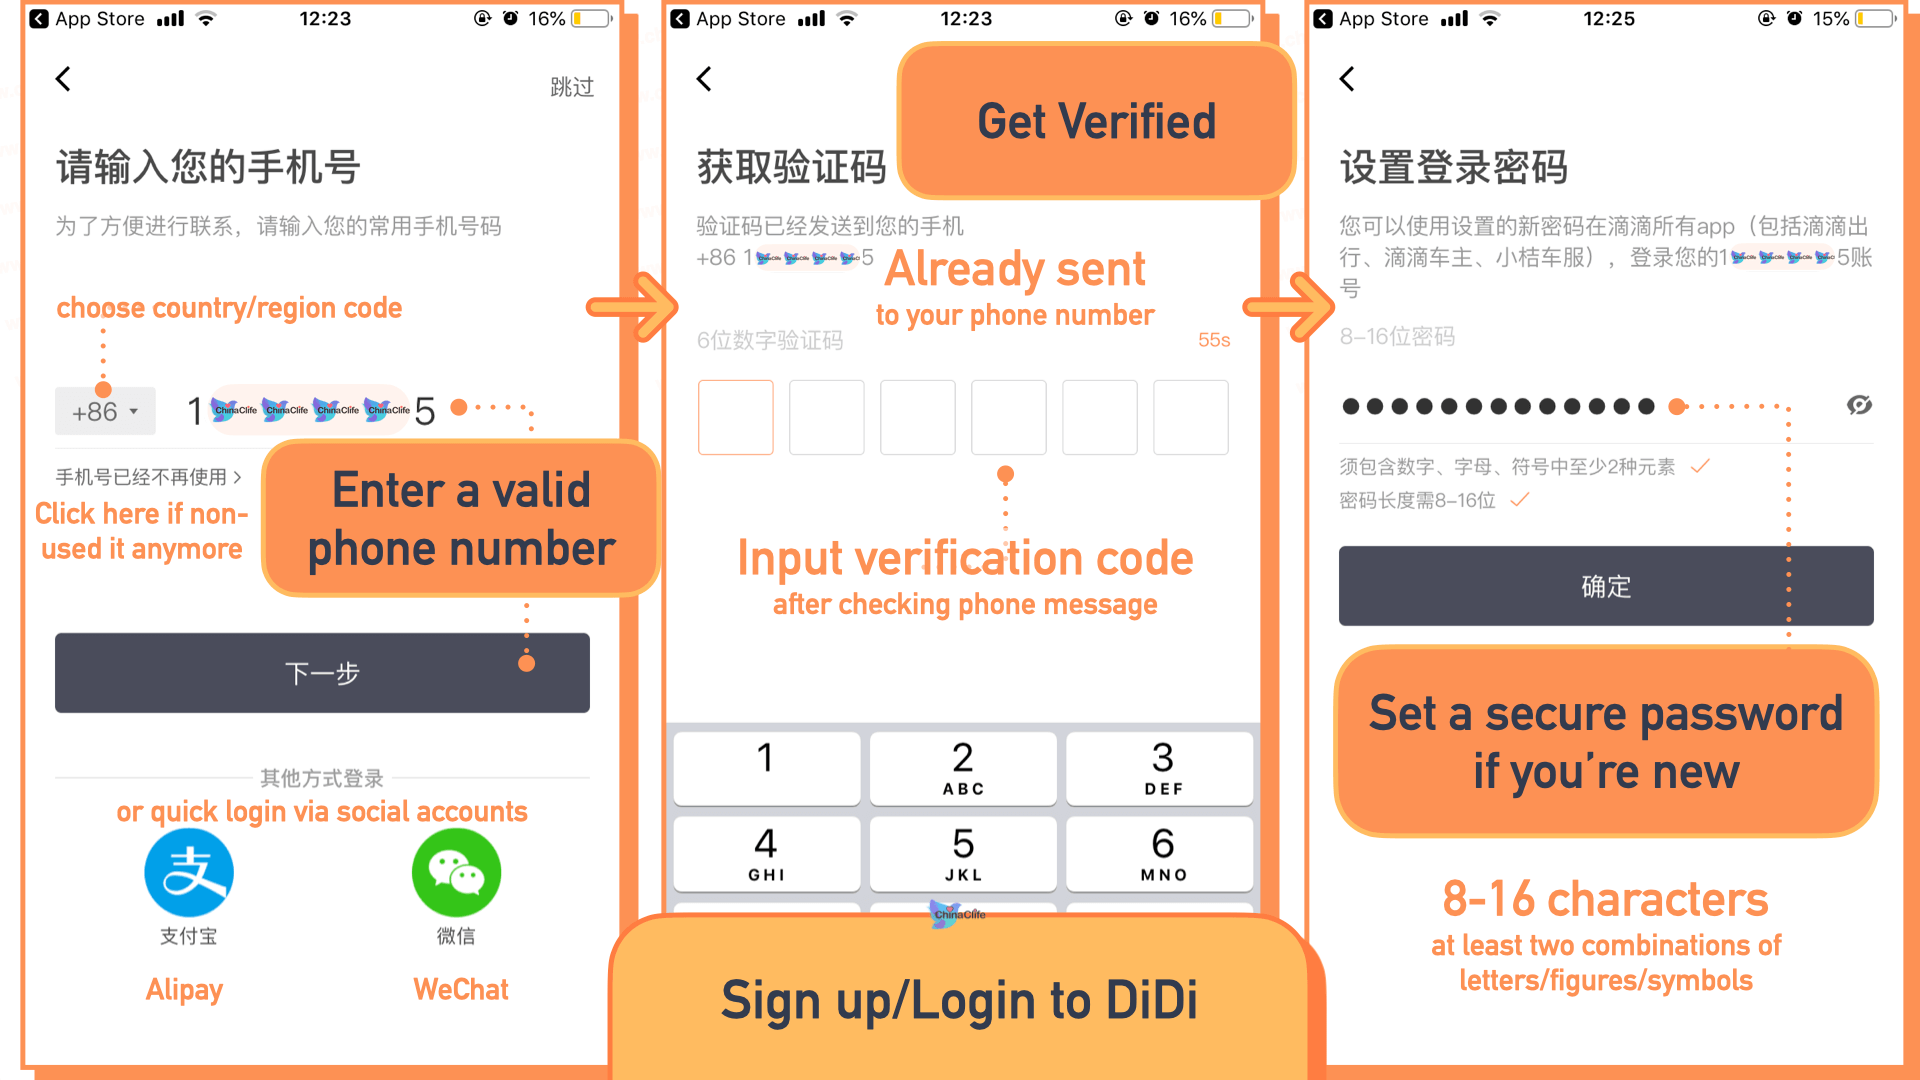 Sign up/Login to DiDi